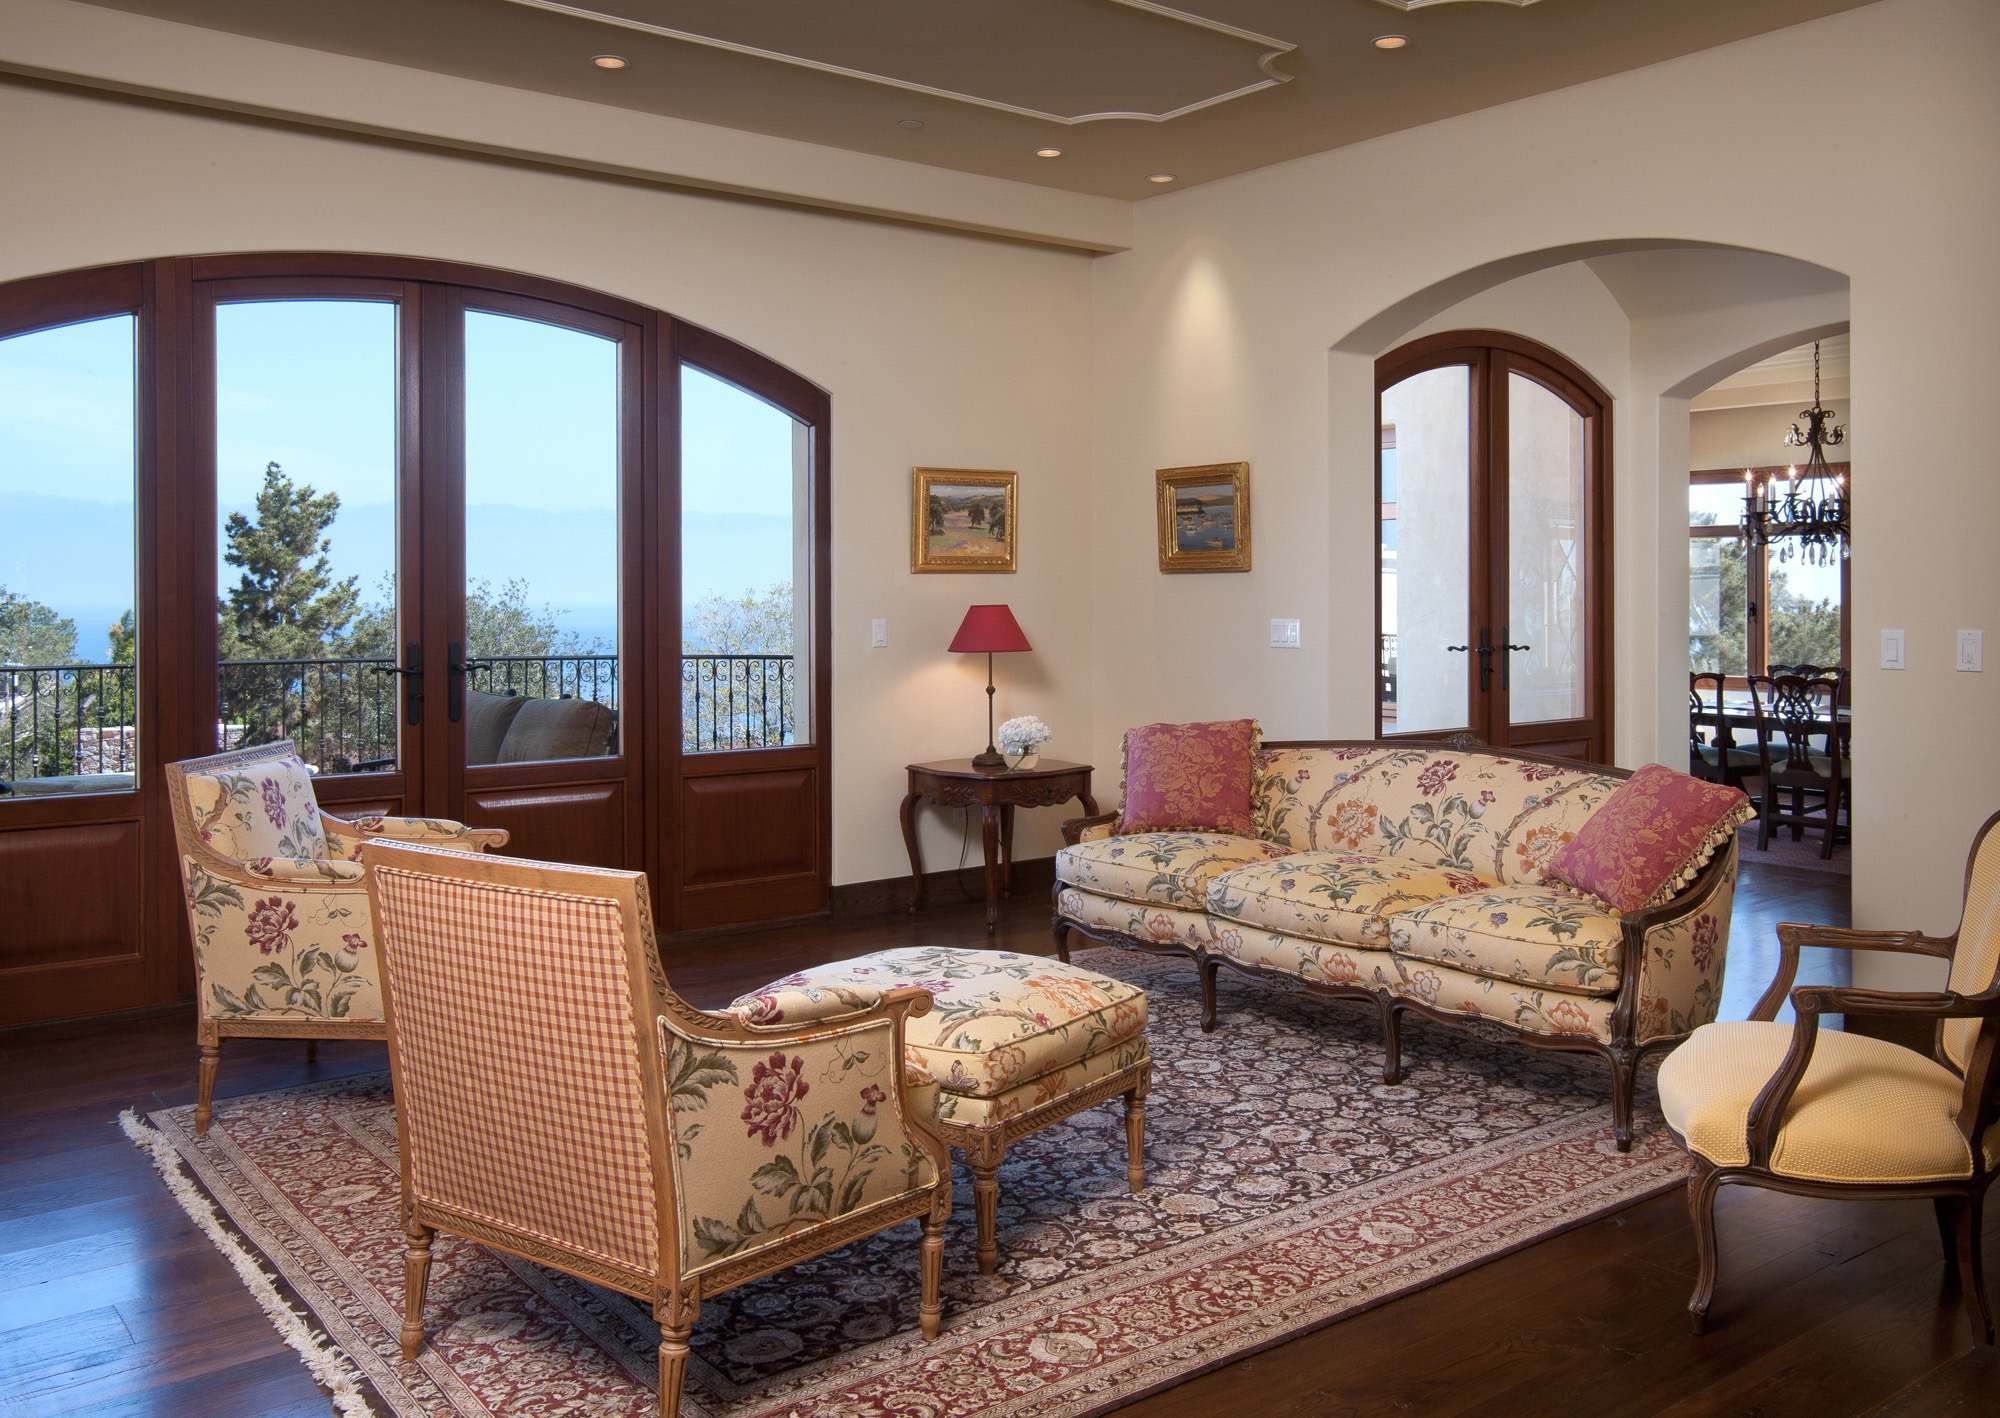 French Country Living Room  (Image 9 of 18)